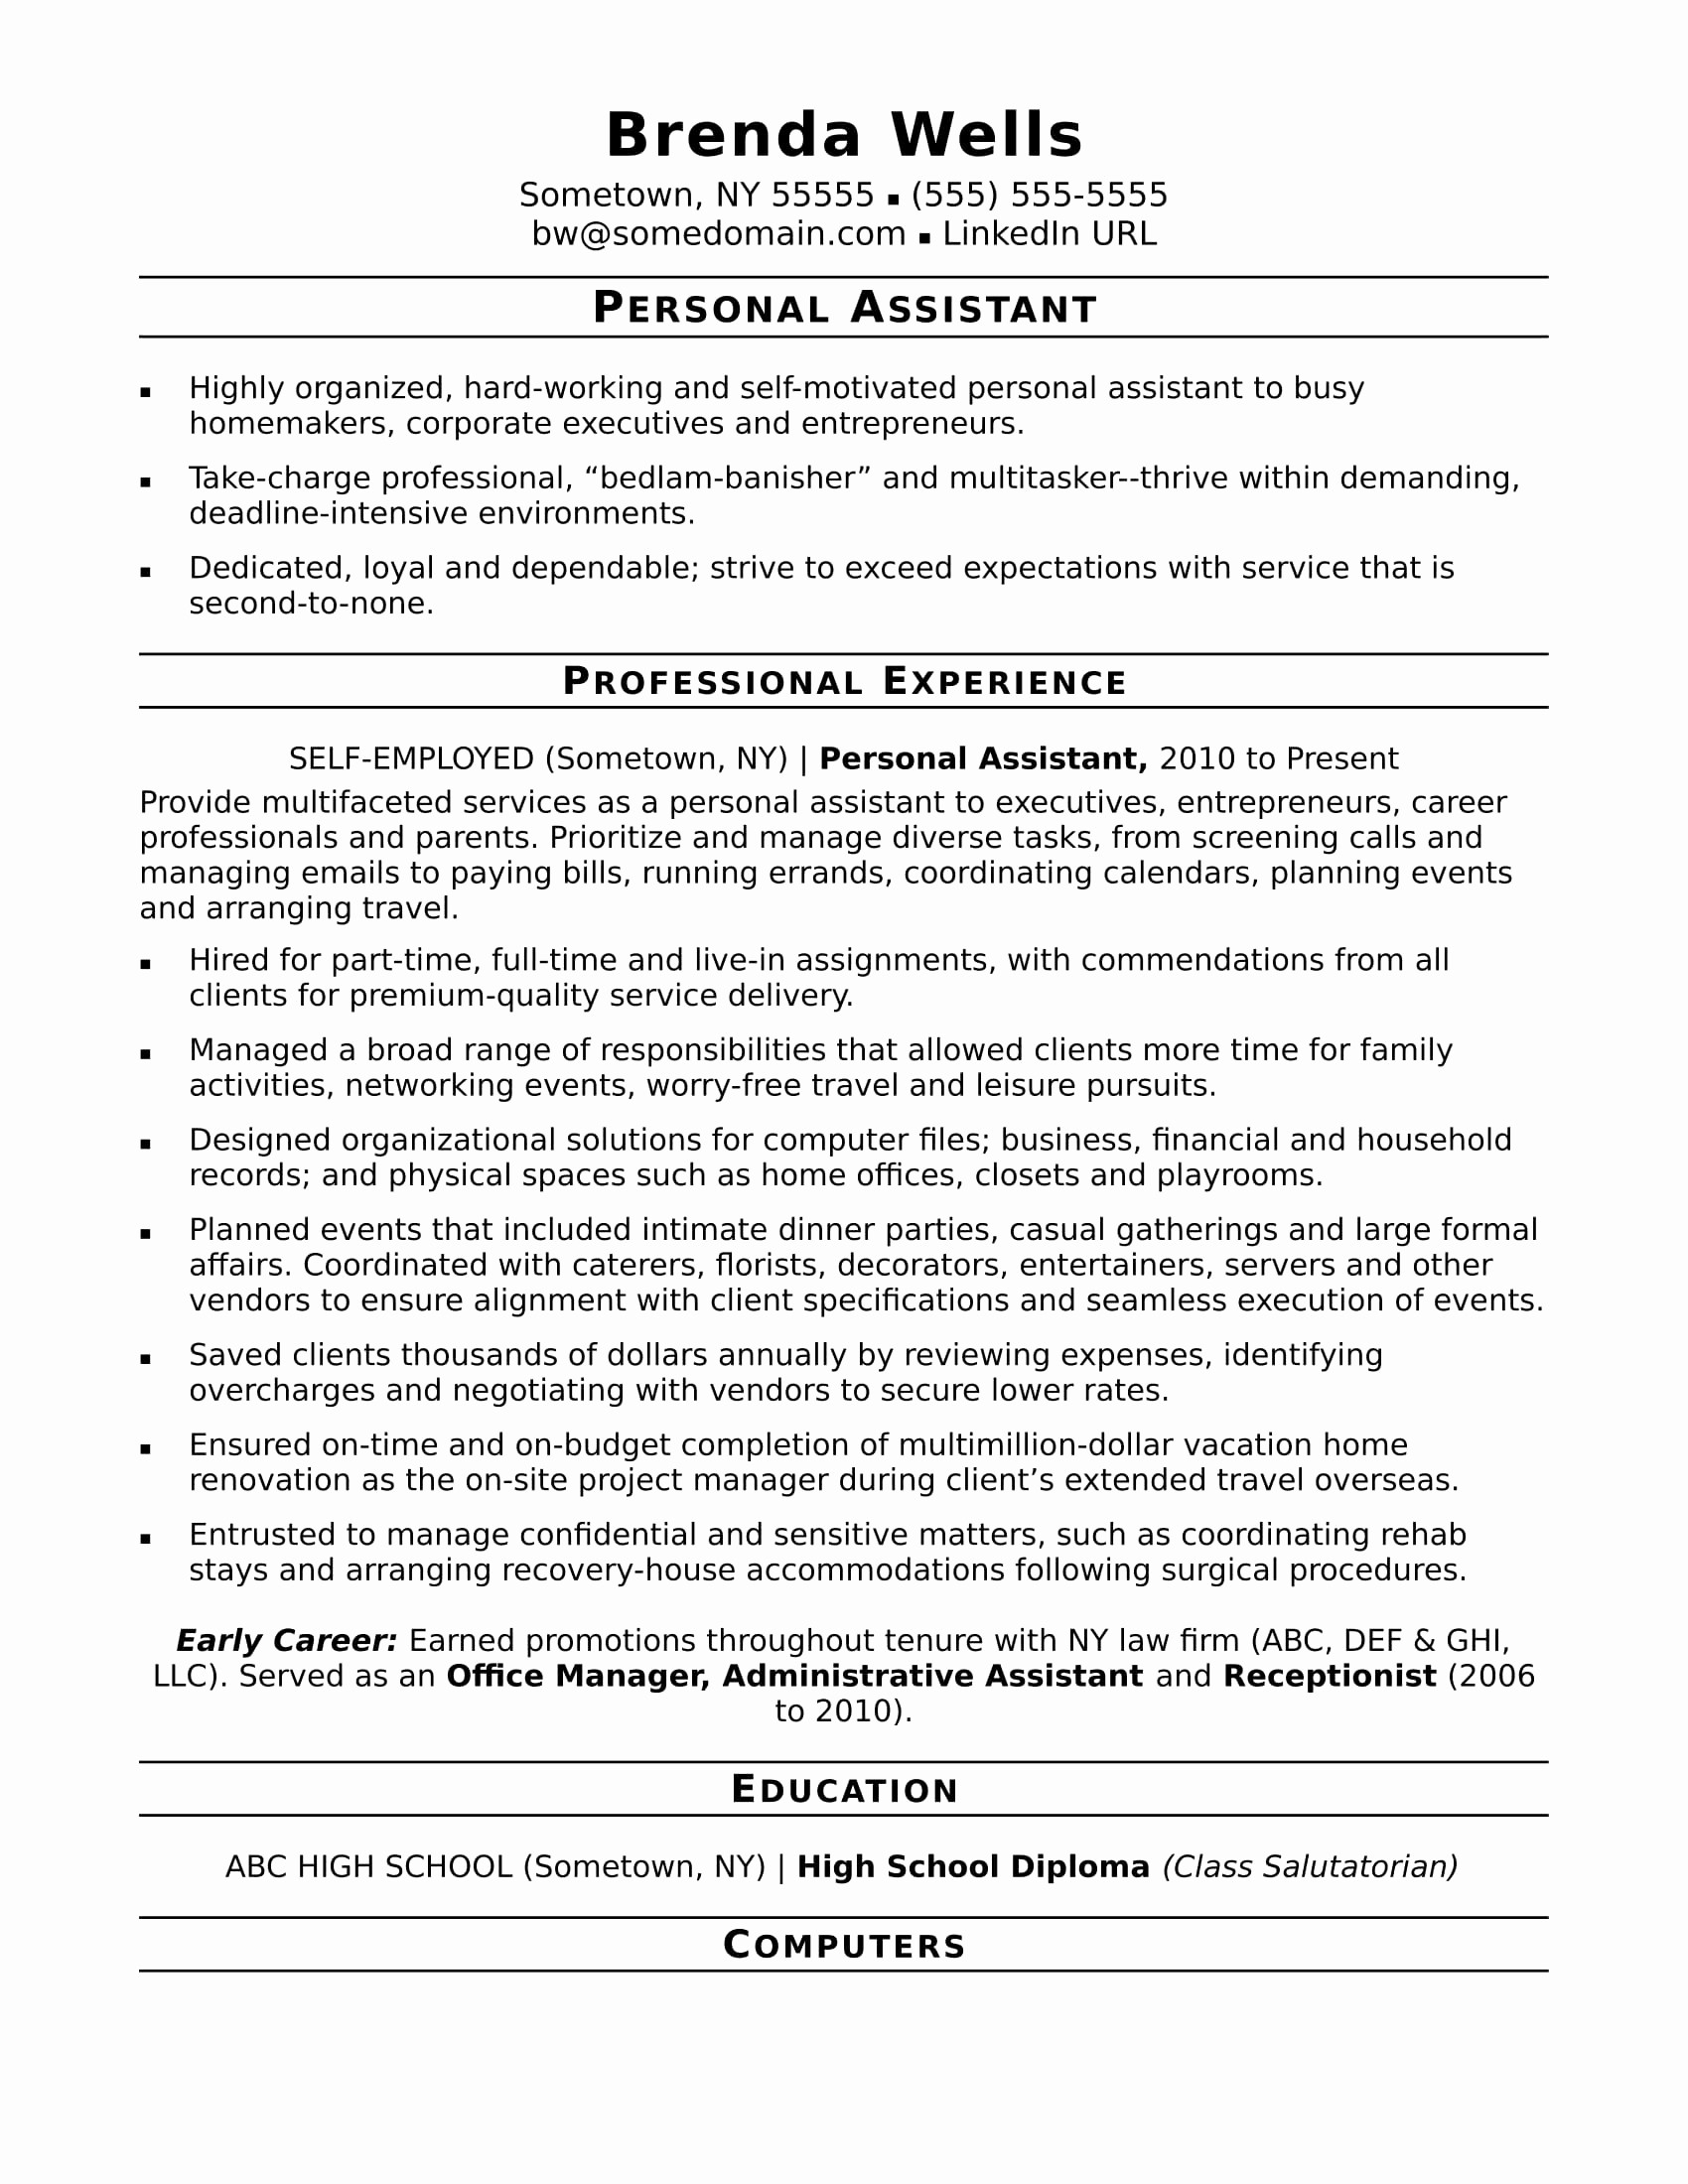 Legal Resumes and Cover Letters - 52 Sample Resume Cover Letter